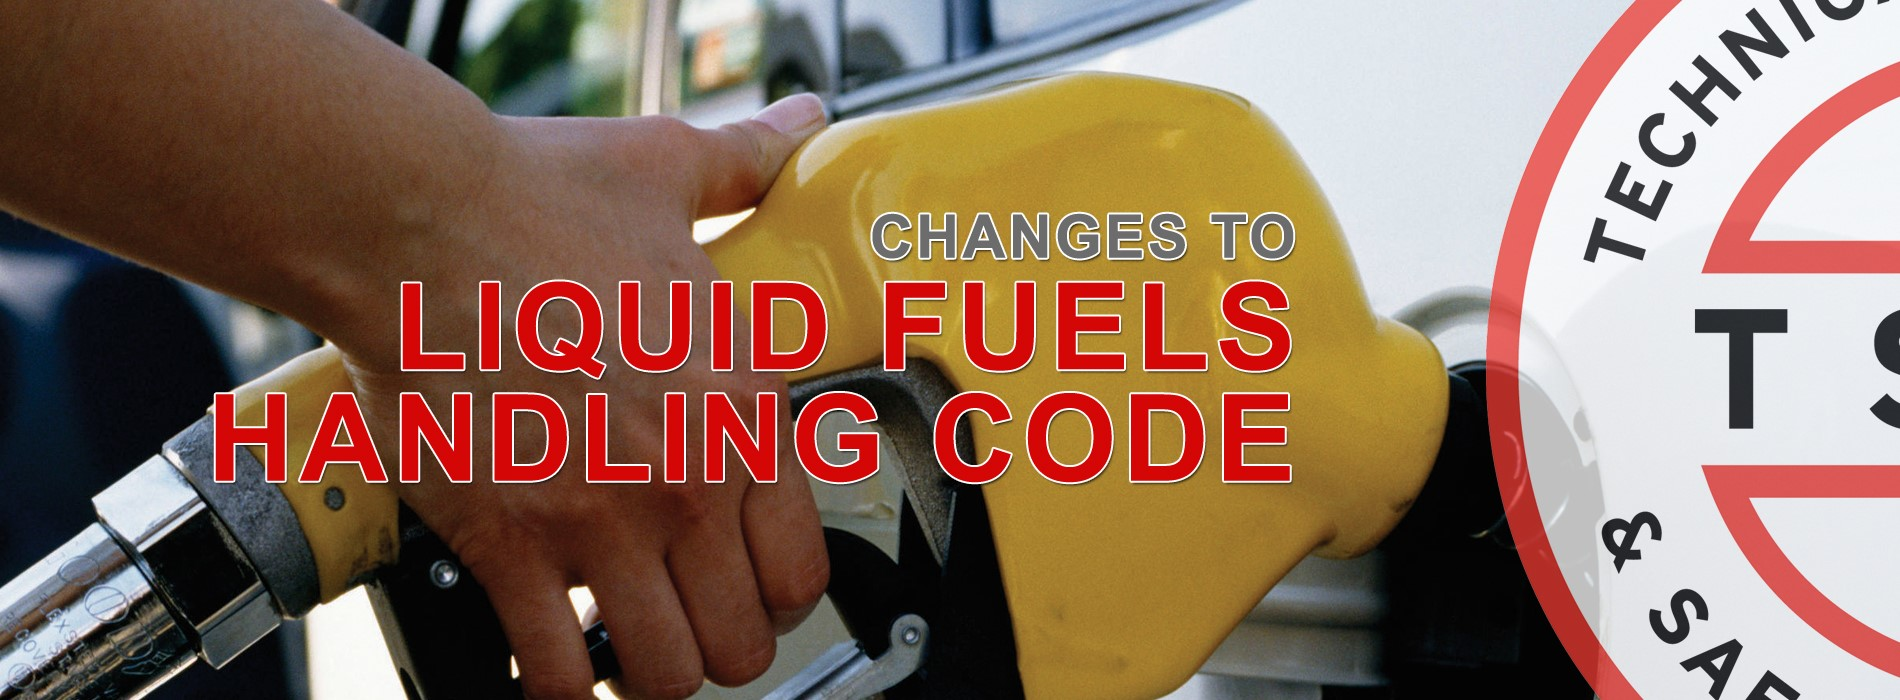 Changes to Liquid Fuels Handling Code